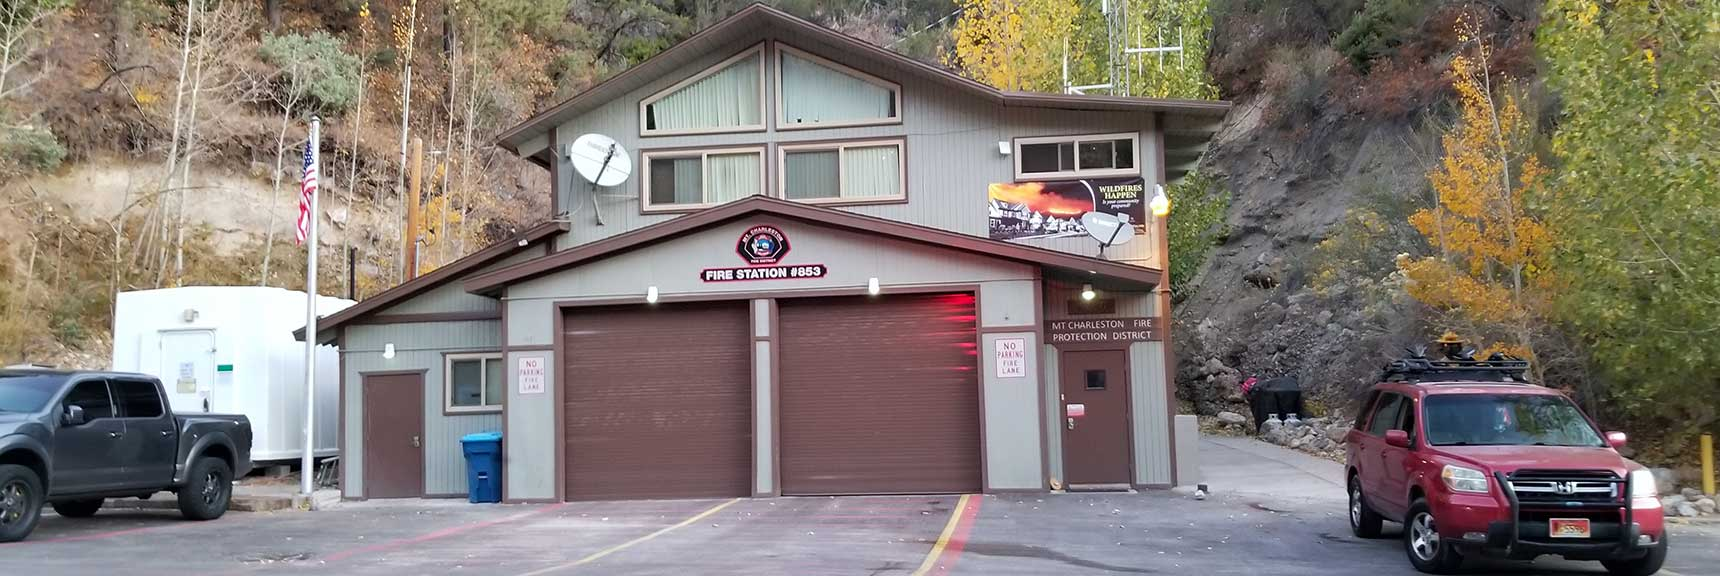 Fire Station on Kyle Canyon Rd, Cockscomb Ridge Wilderness Circuit in Mt. Charleston Wilderness, Nevada